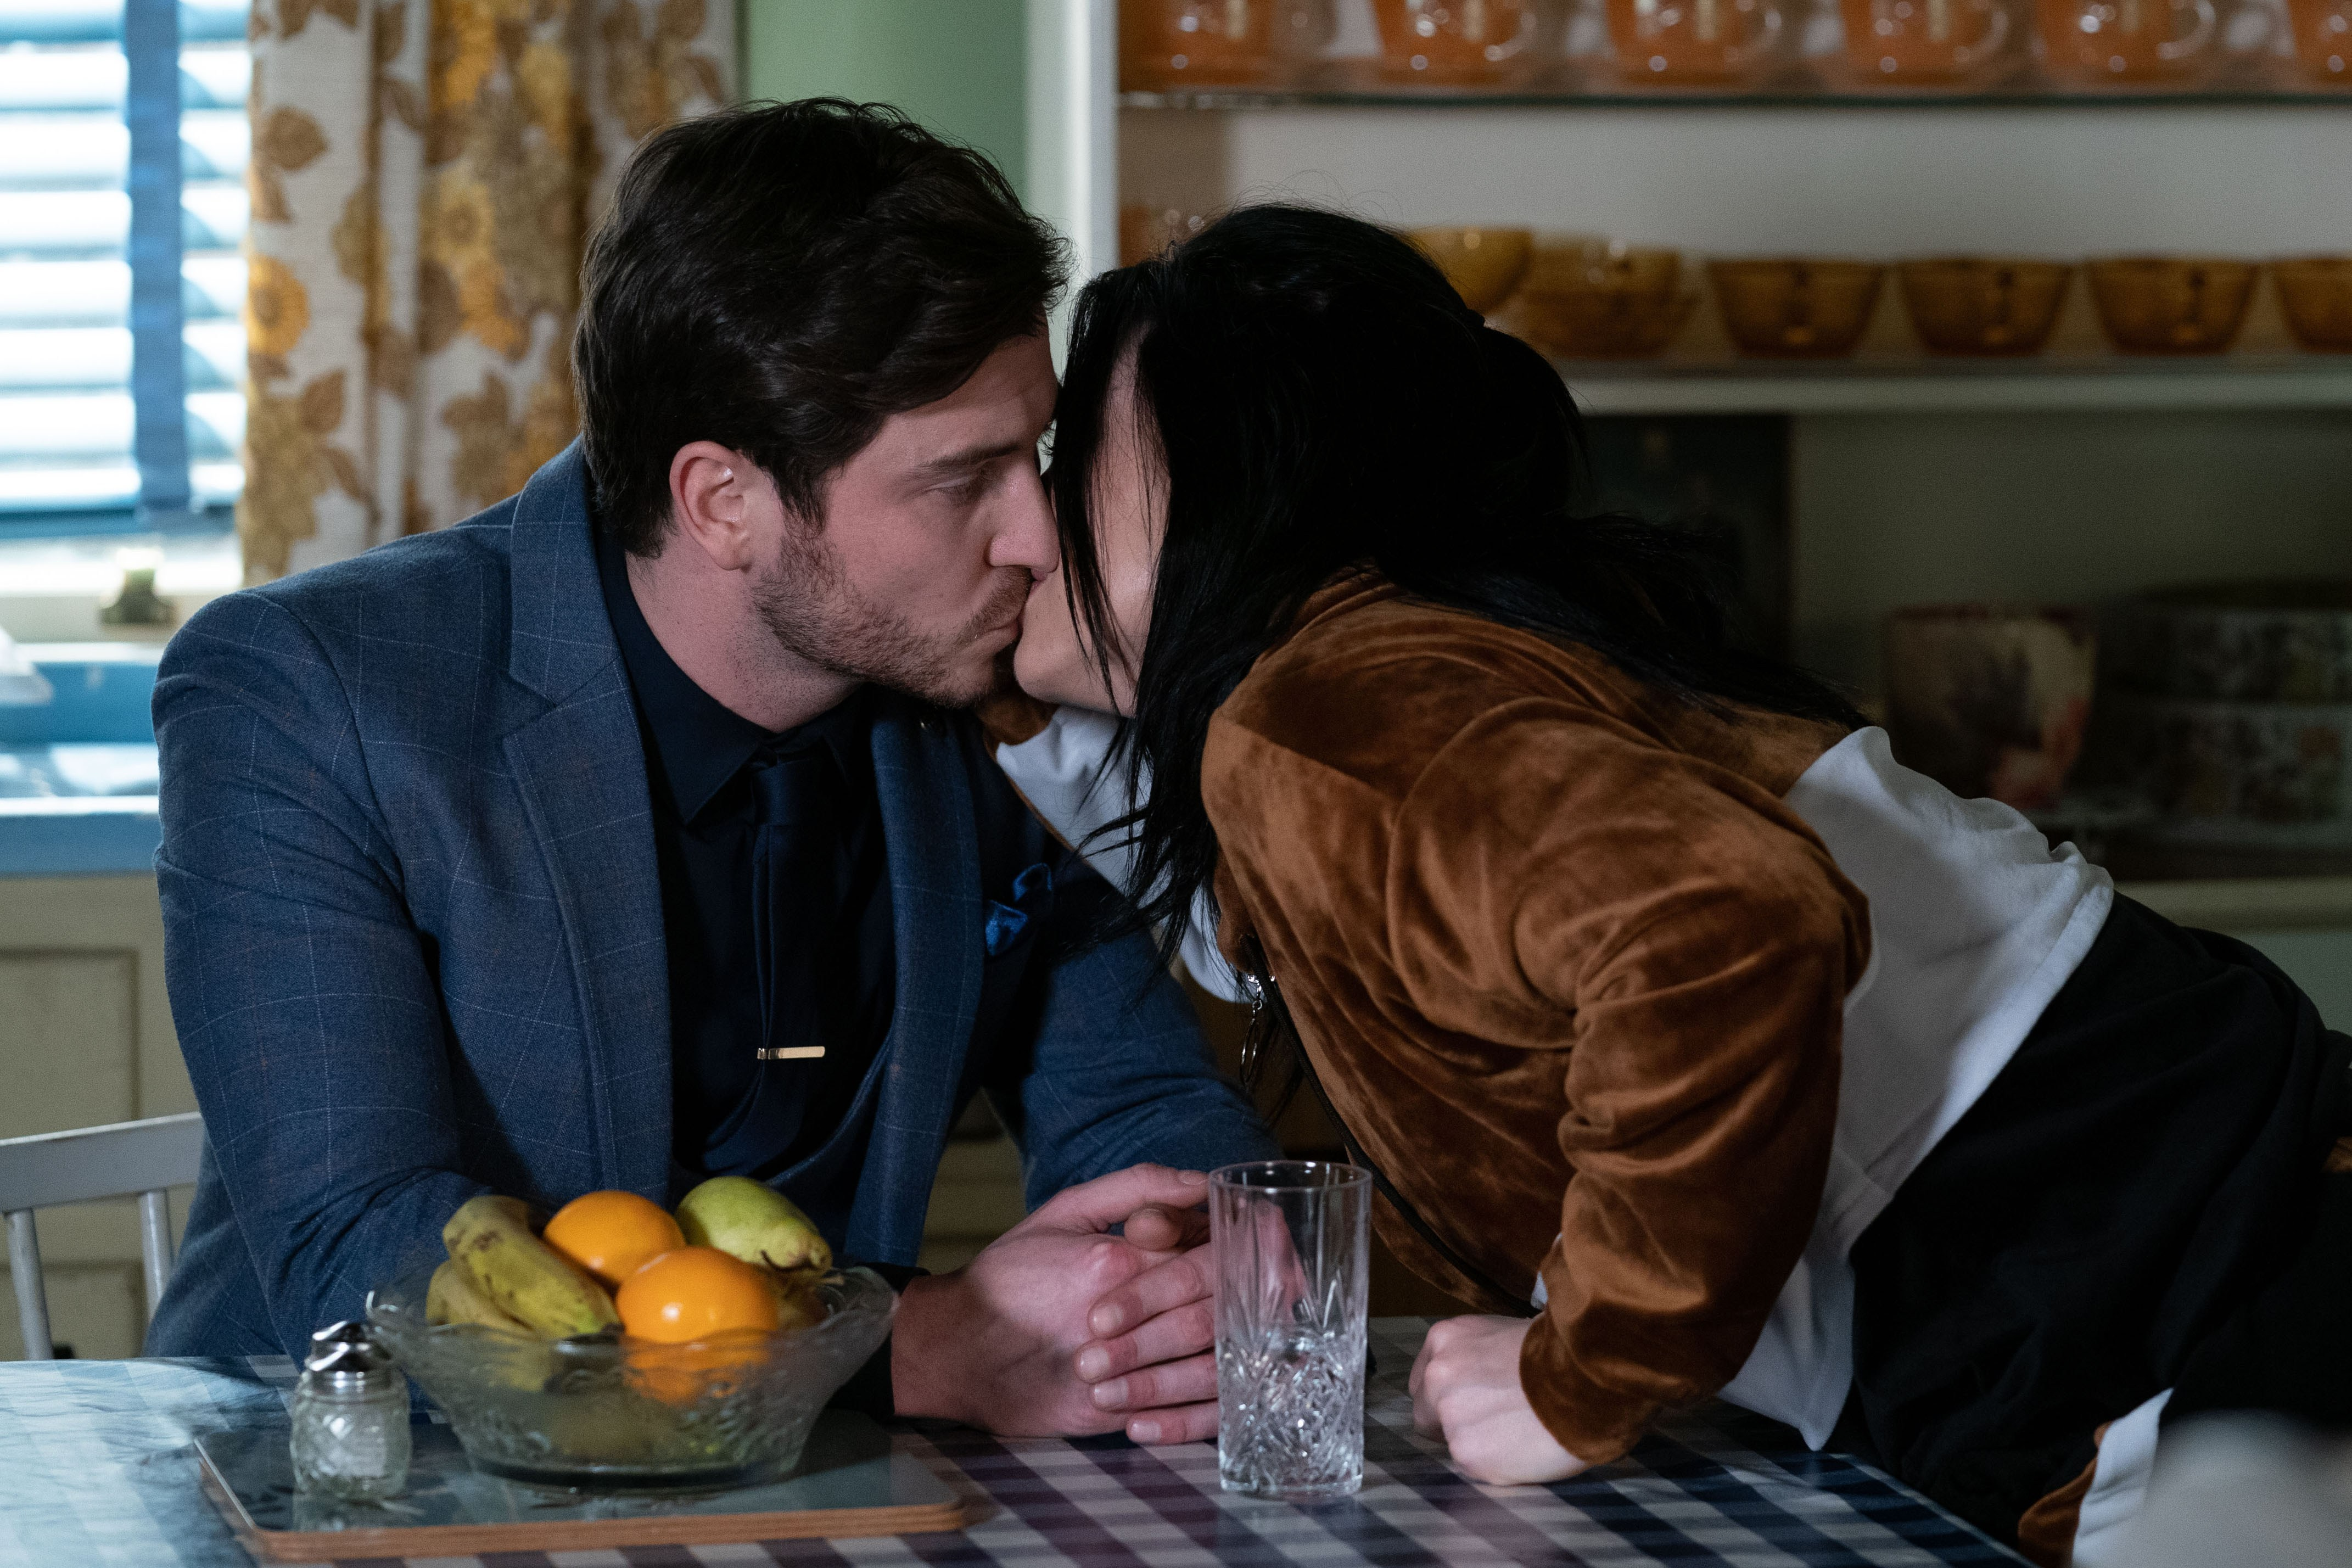 EastEnders spoilers: Whitney Dean and Gray Atkins' shock passion revealed in new images